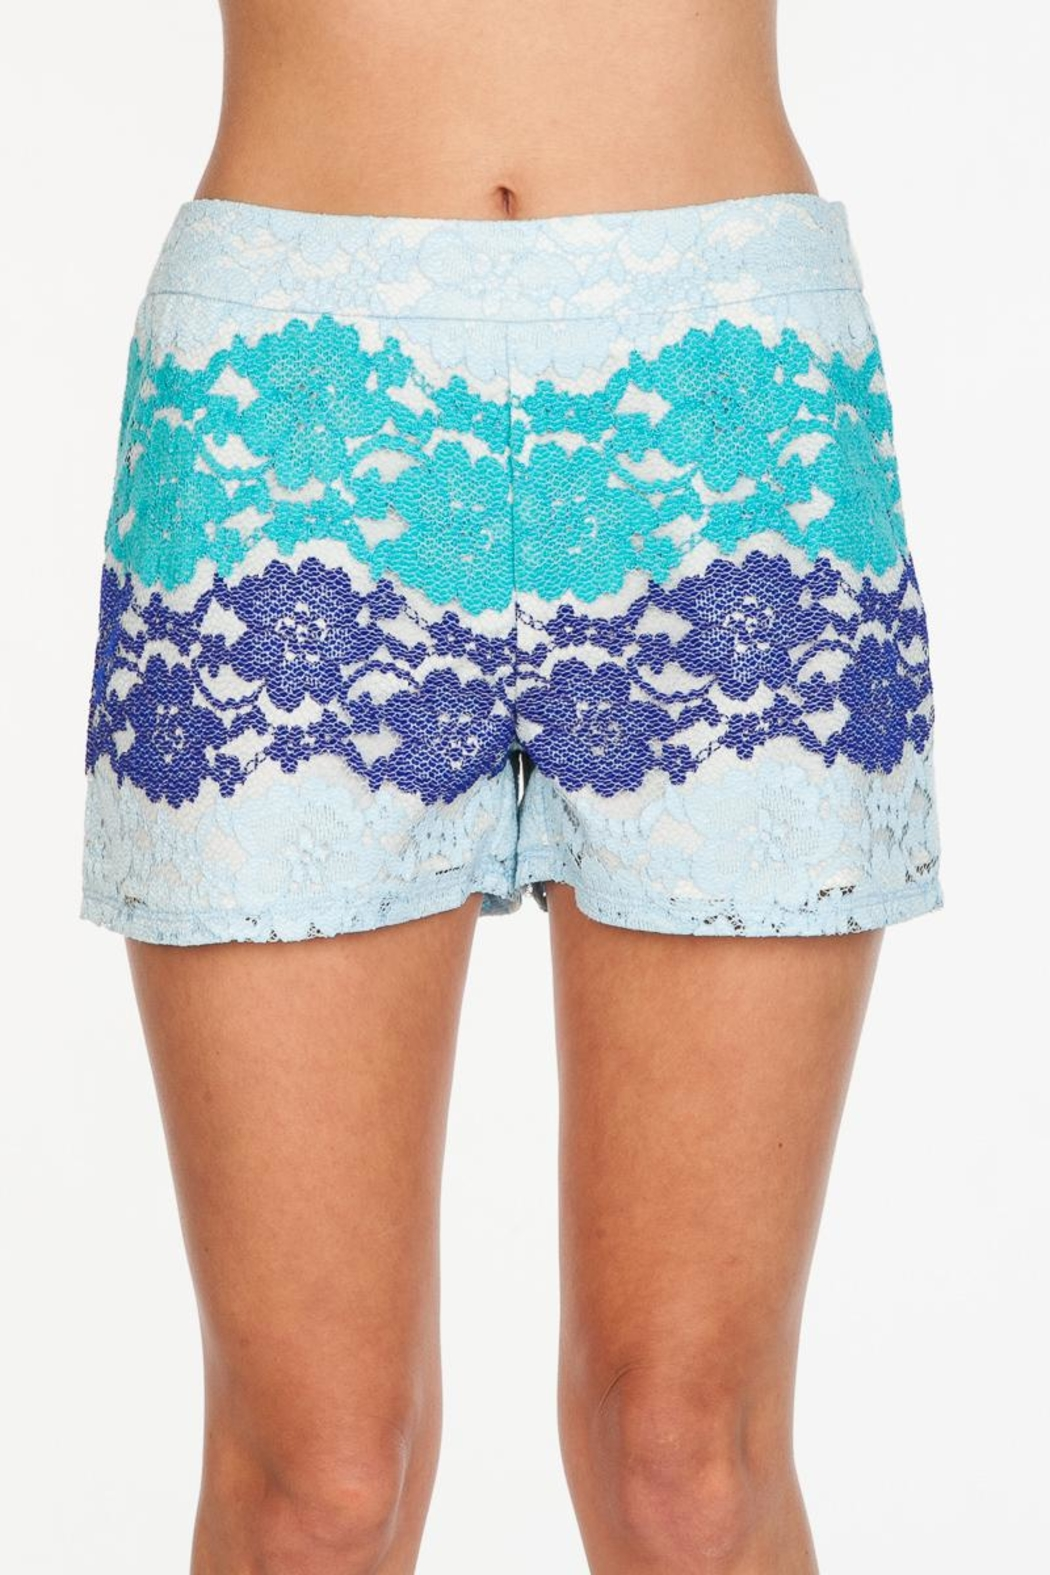 Everly Blue Lace Shorts - Front Full Image